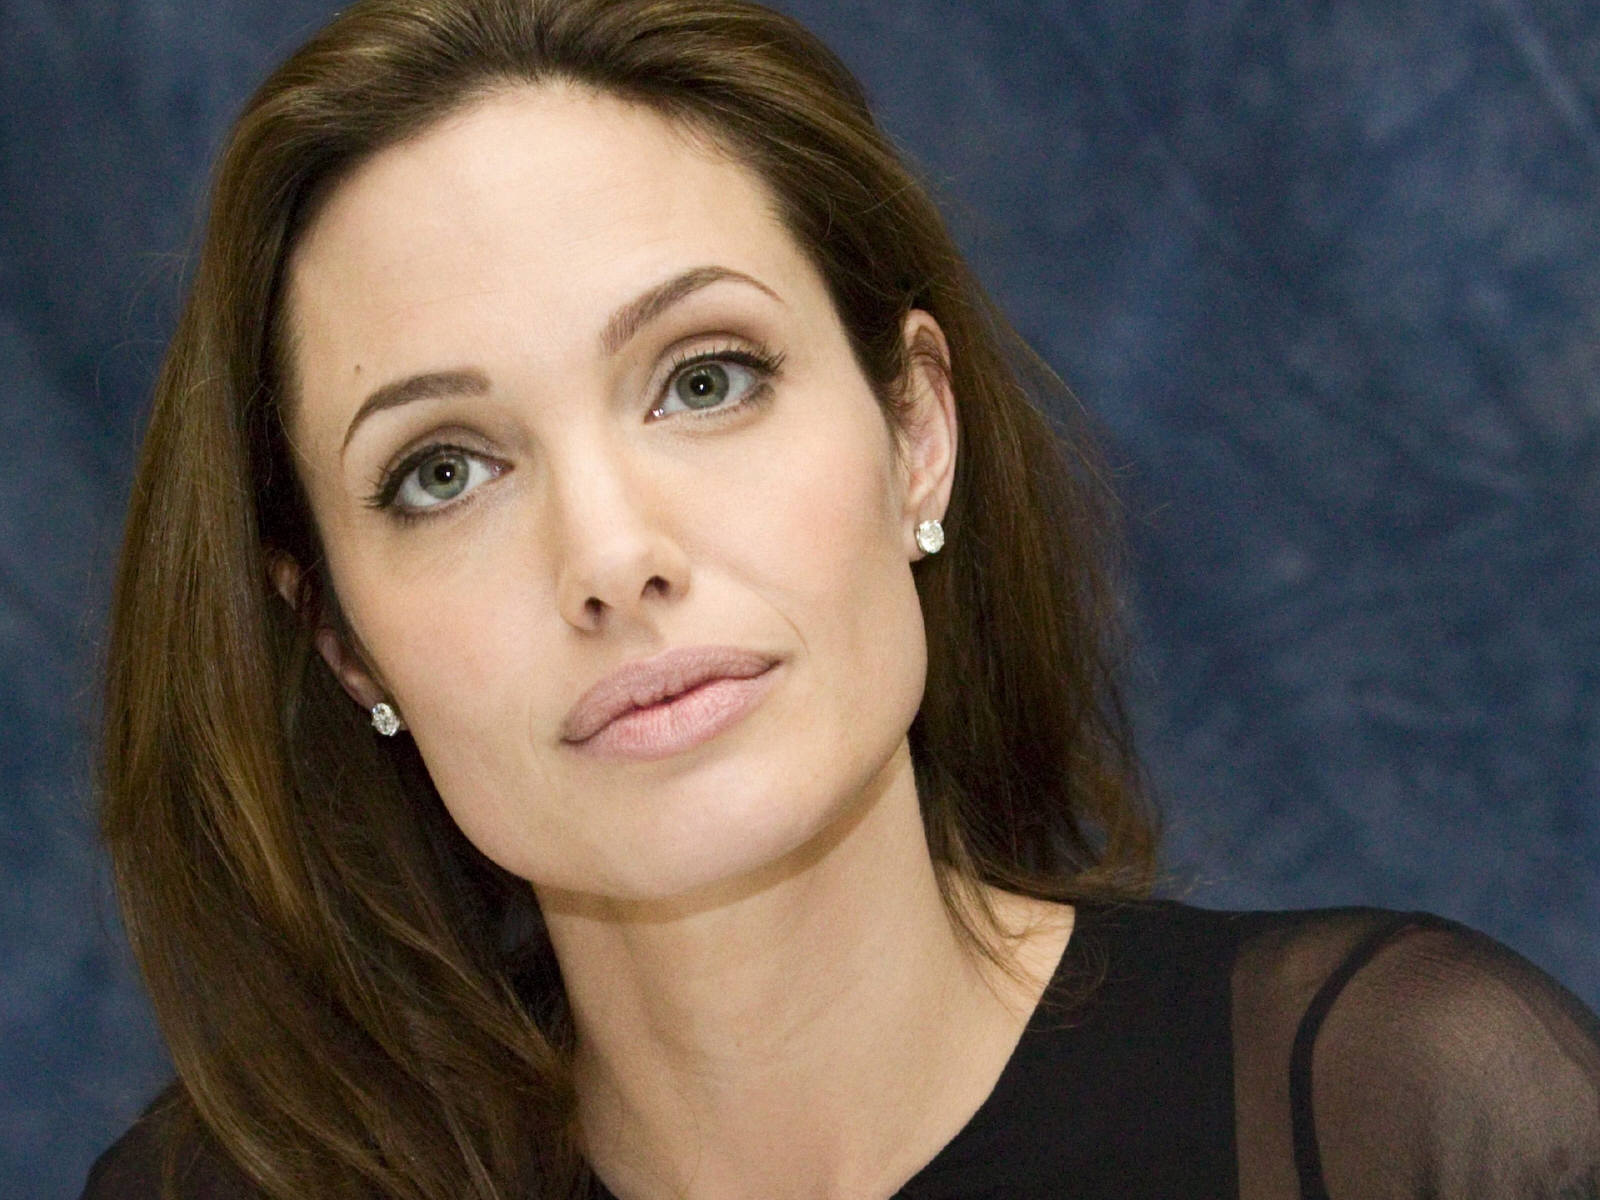 Angelina Jolie Reveals Her Decision To Remove Ovaries After Cancer Scare